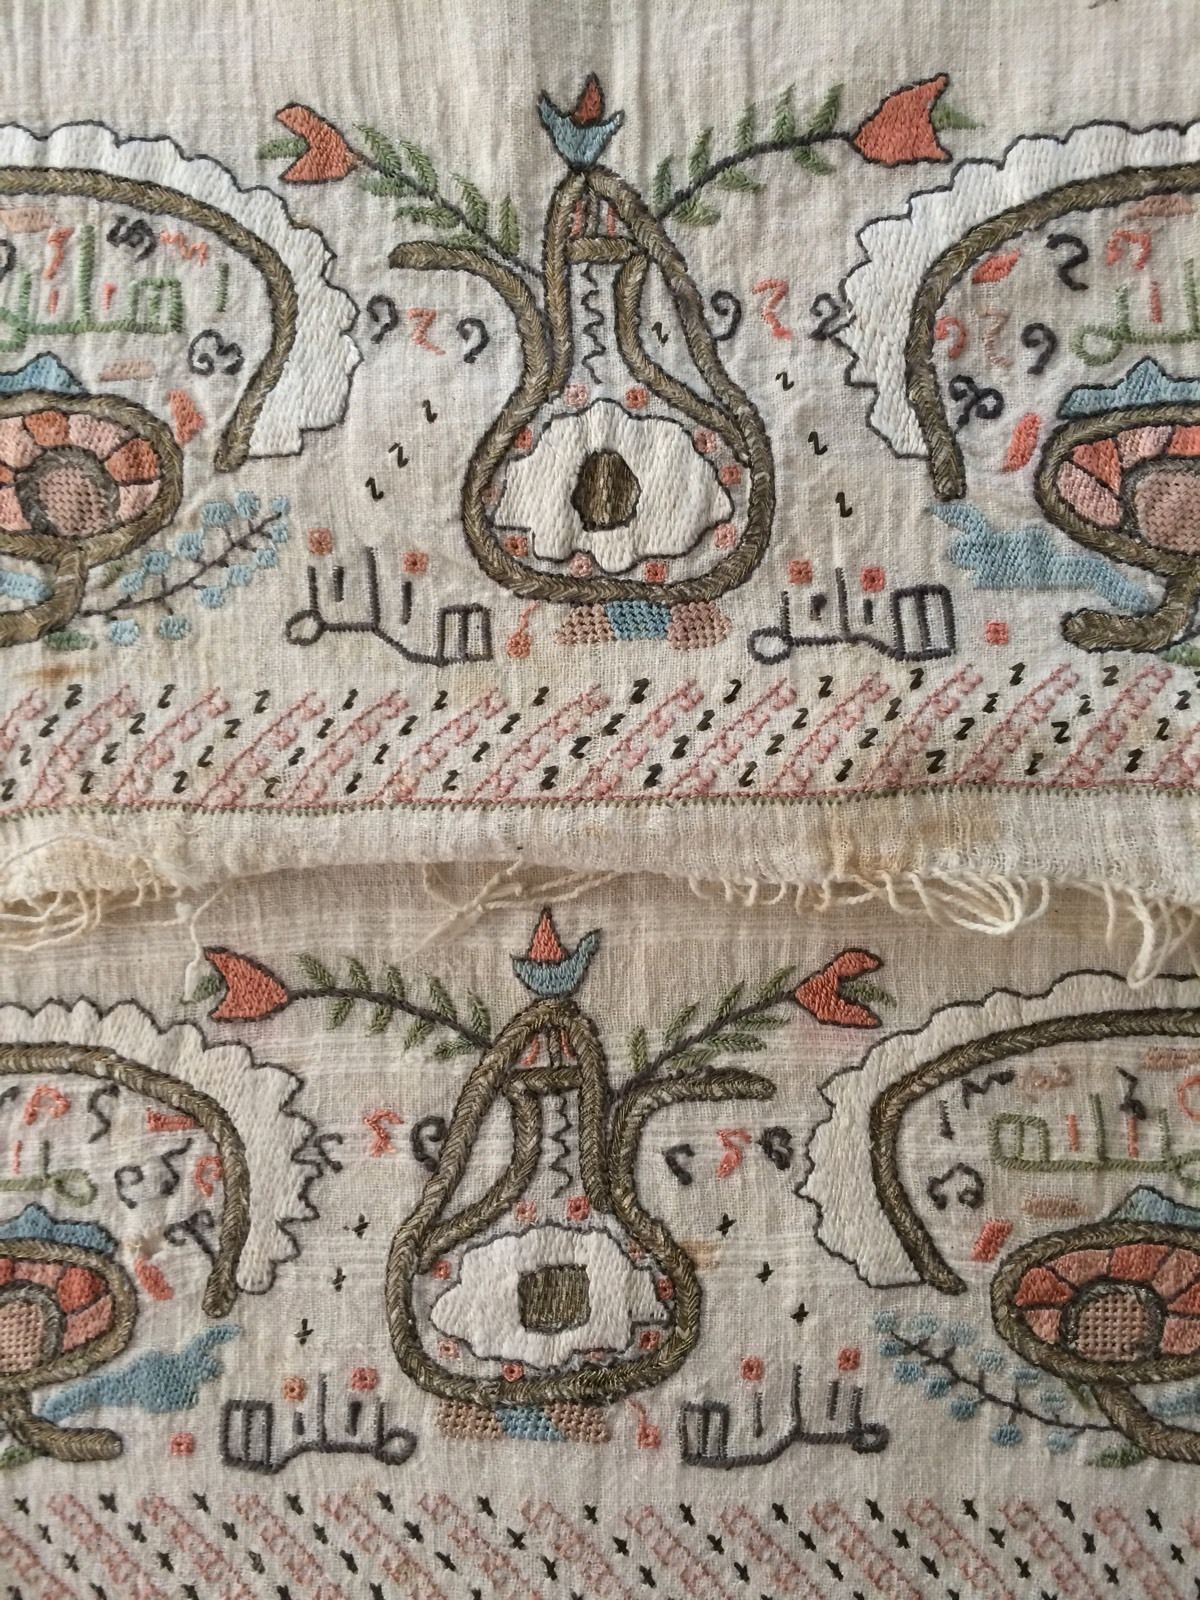 19th C Long Antique Ottoman Turkish Hand Embroidery On Linen